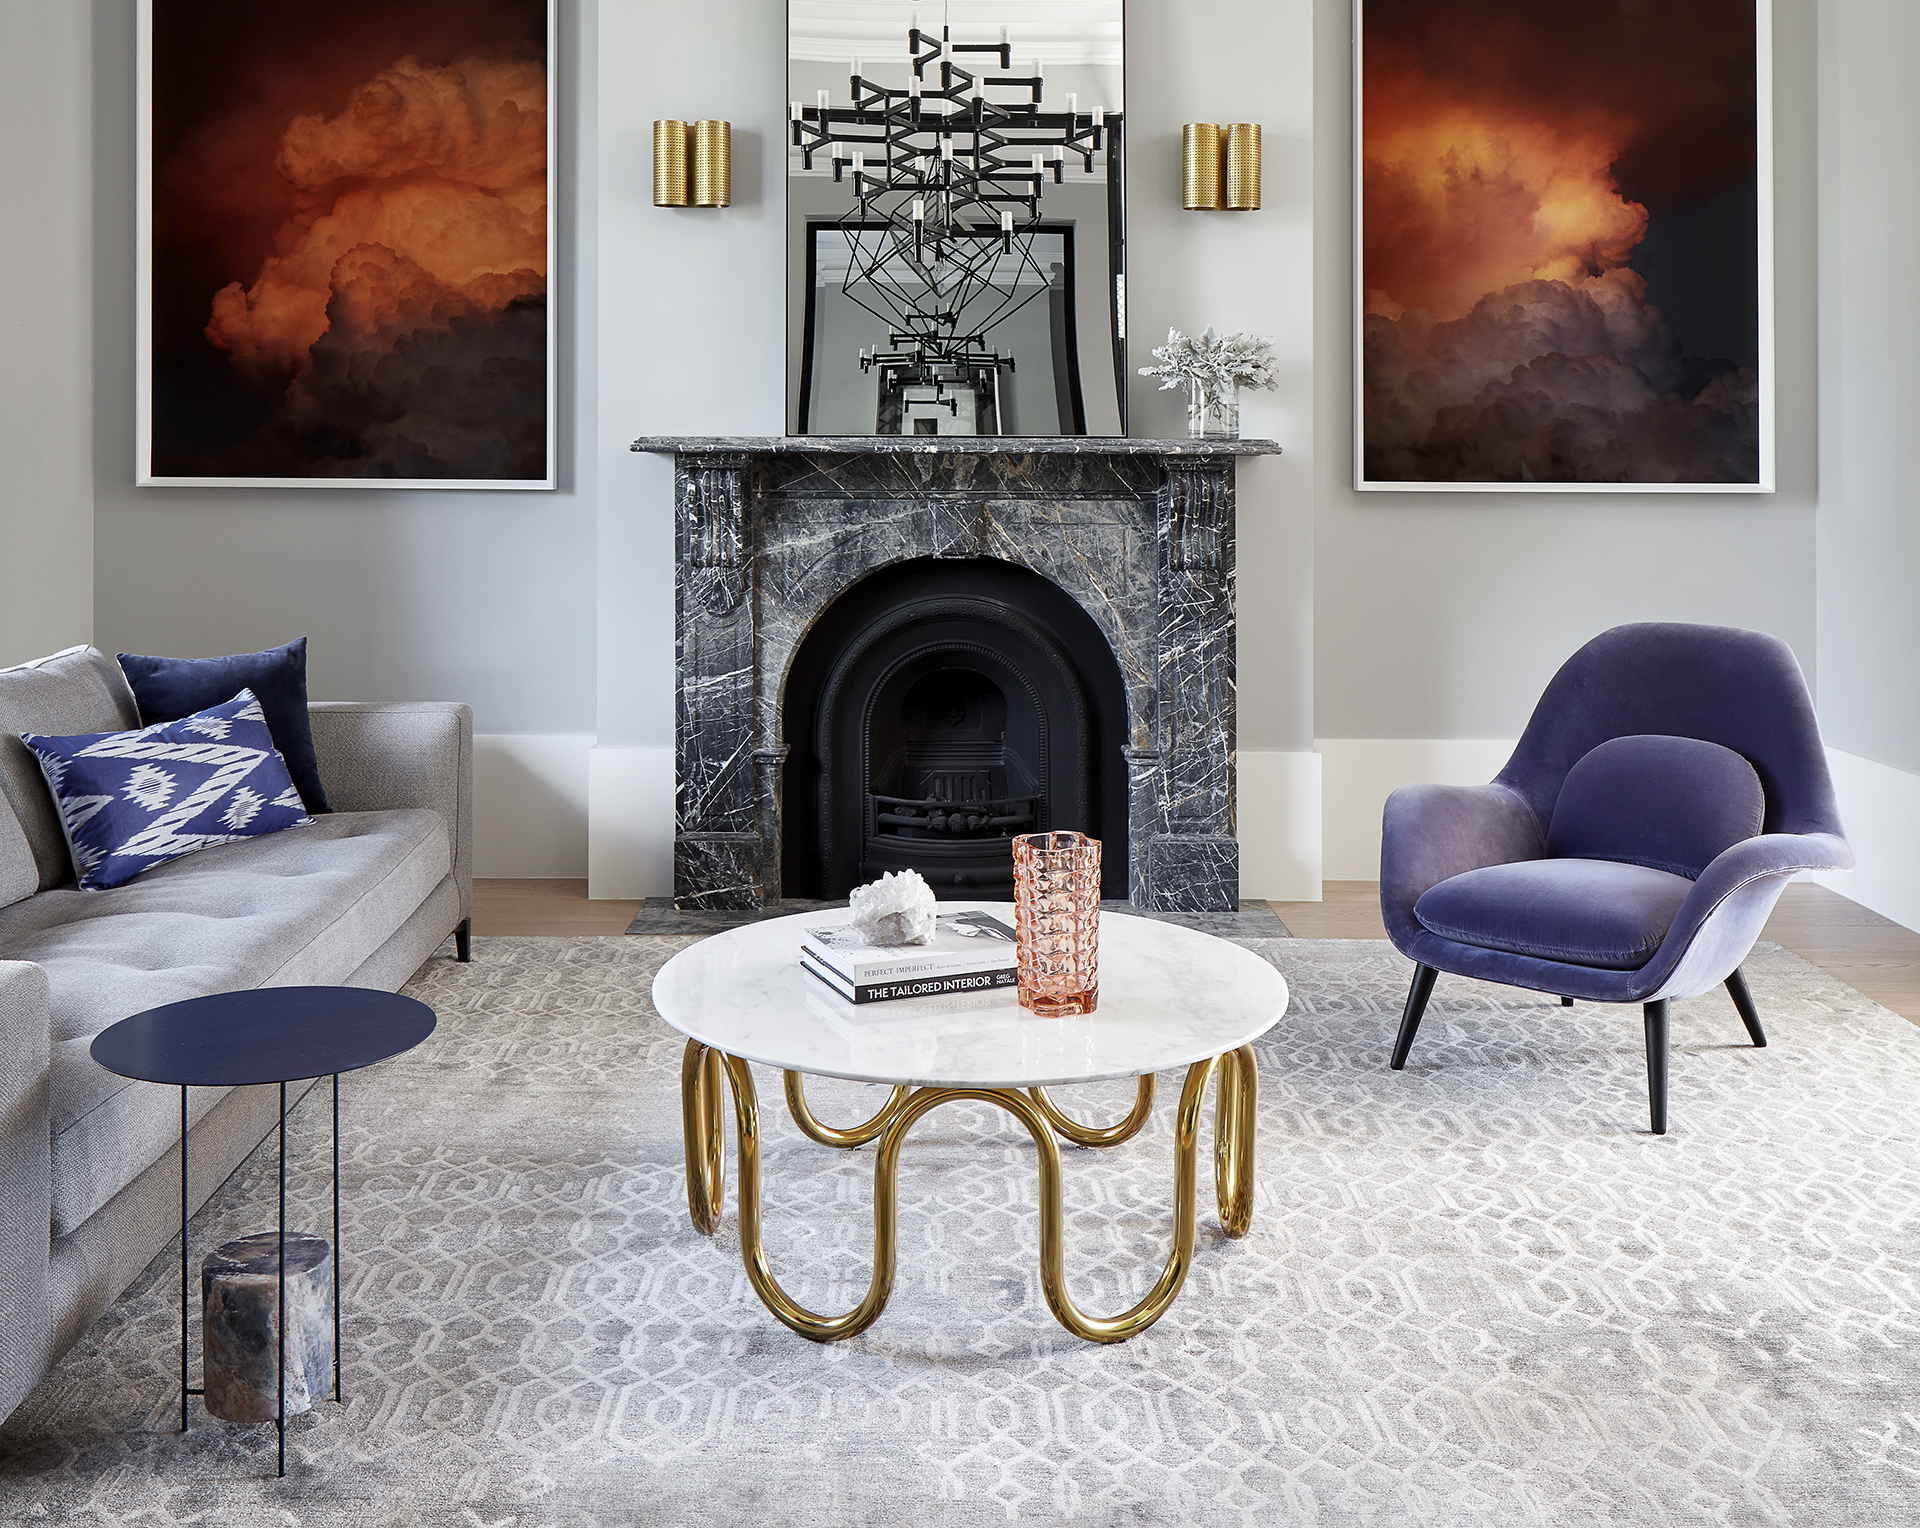 10 Fireplace ideas to inspire your next design update | Belle